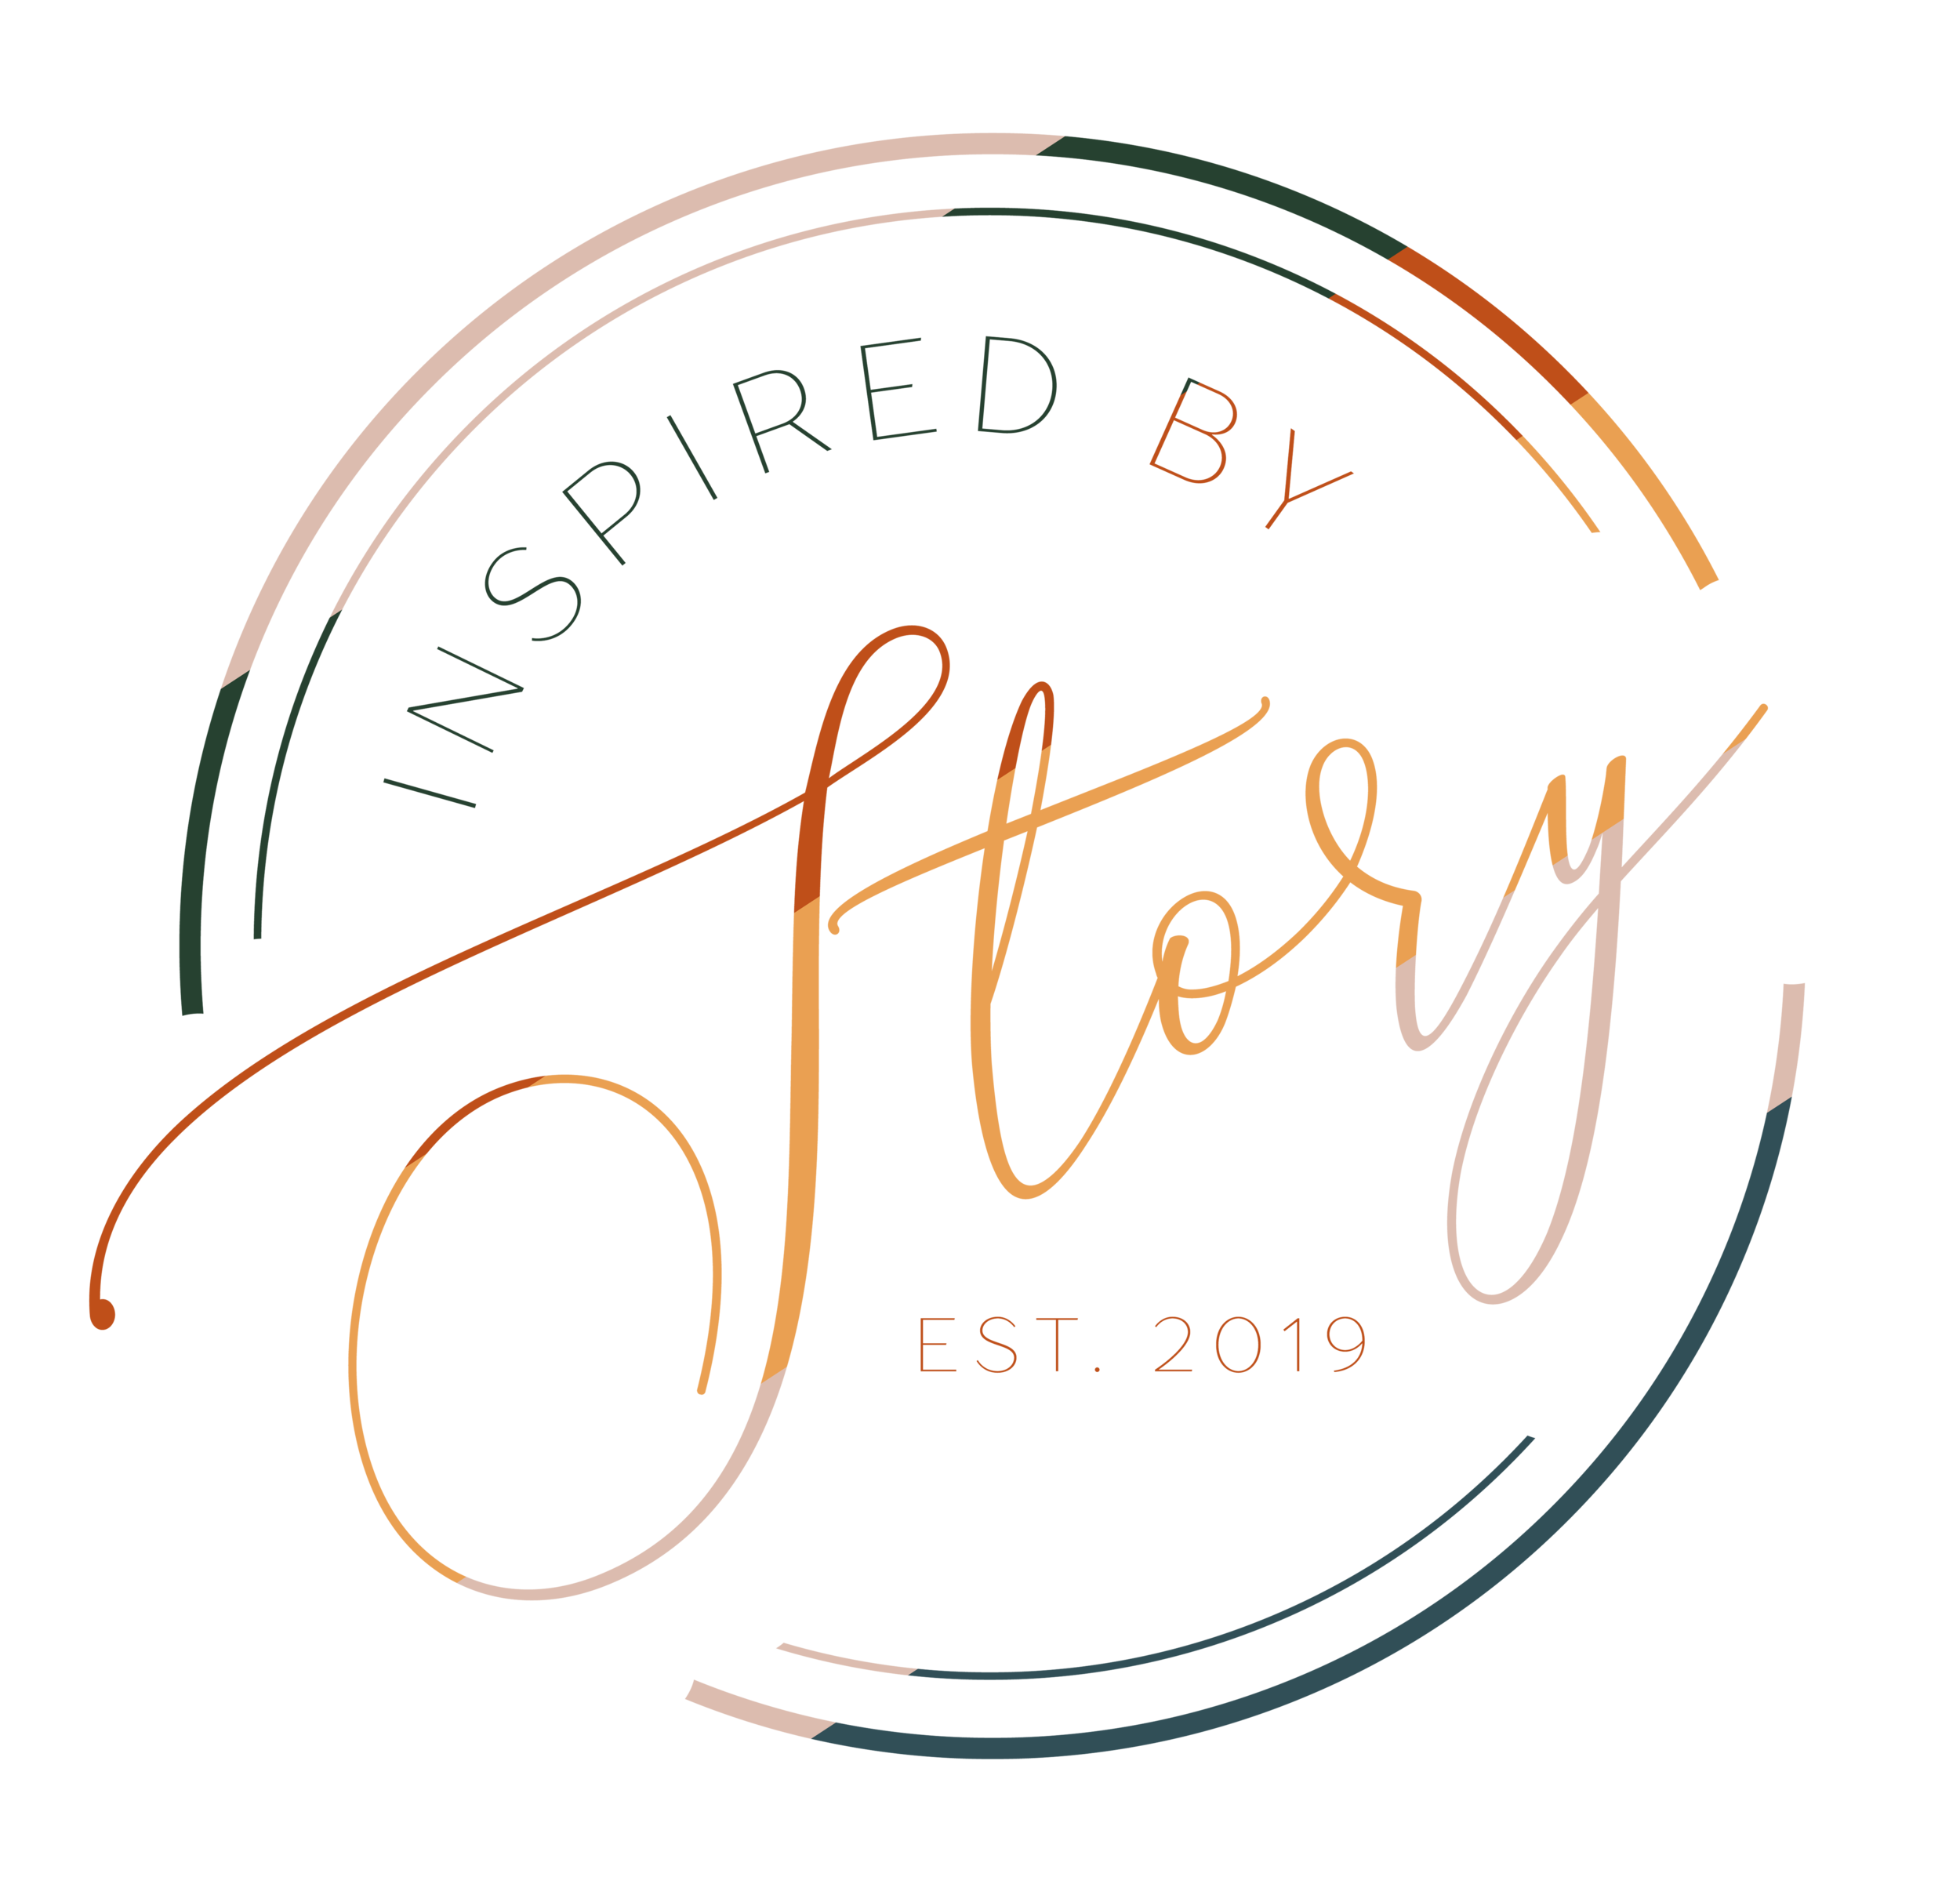 Inspired-By-Story-Logos-V4-15.png